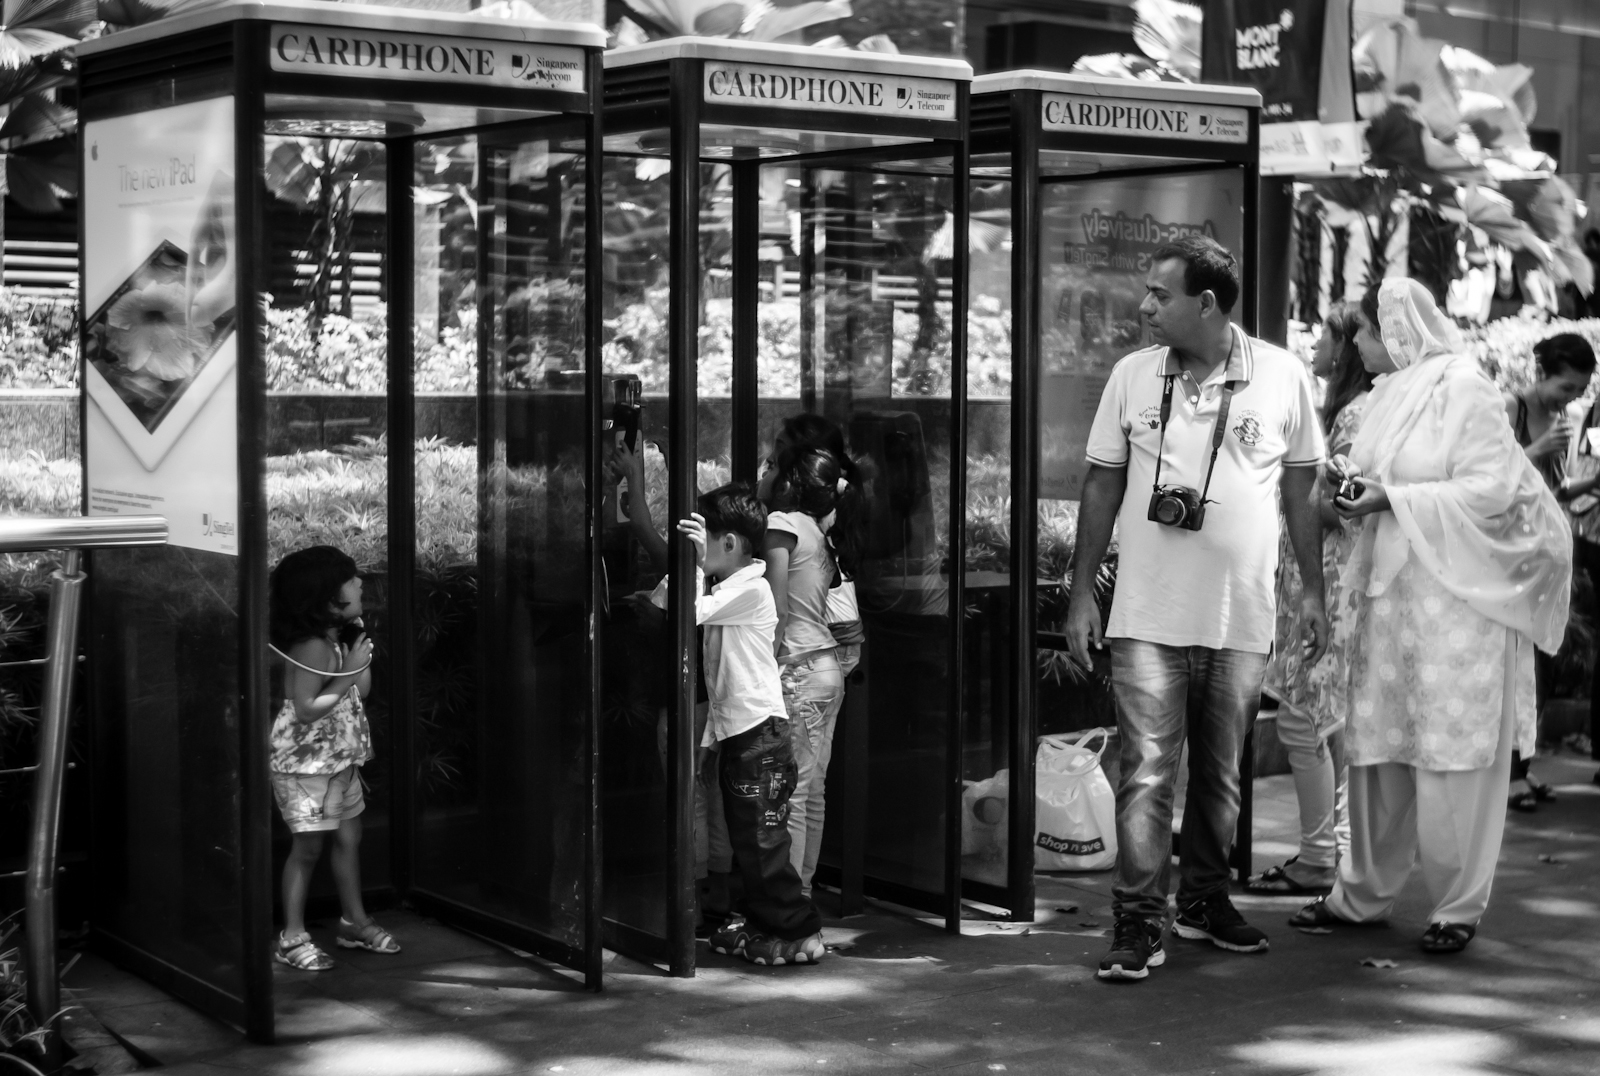 Street photography - tourist family playing with a phone booth in Orchard Road